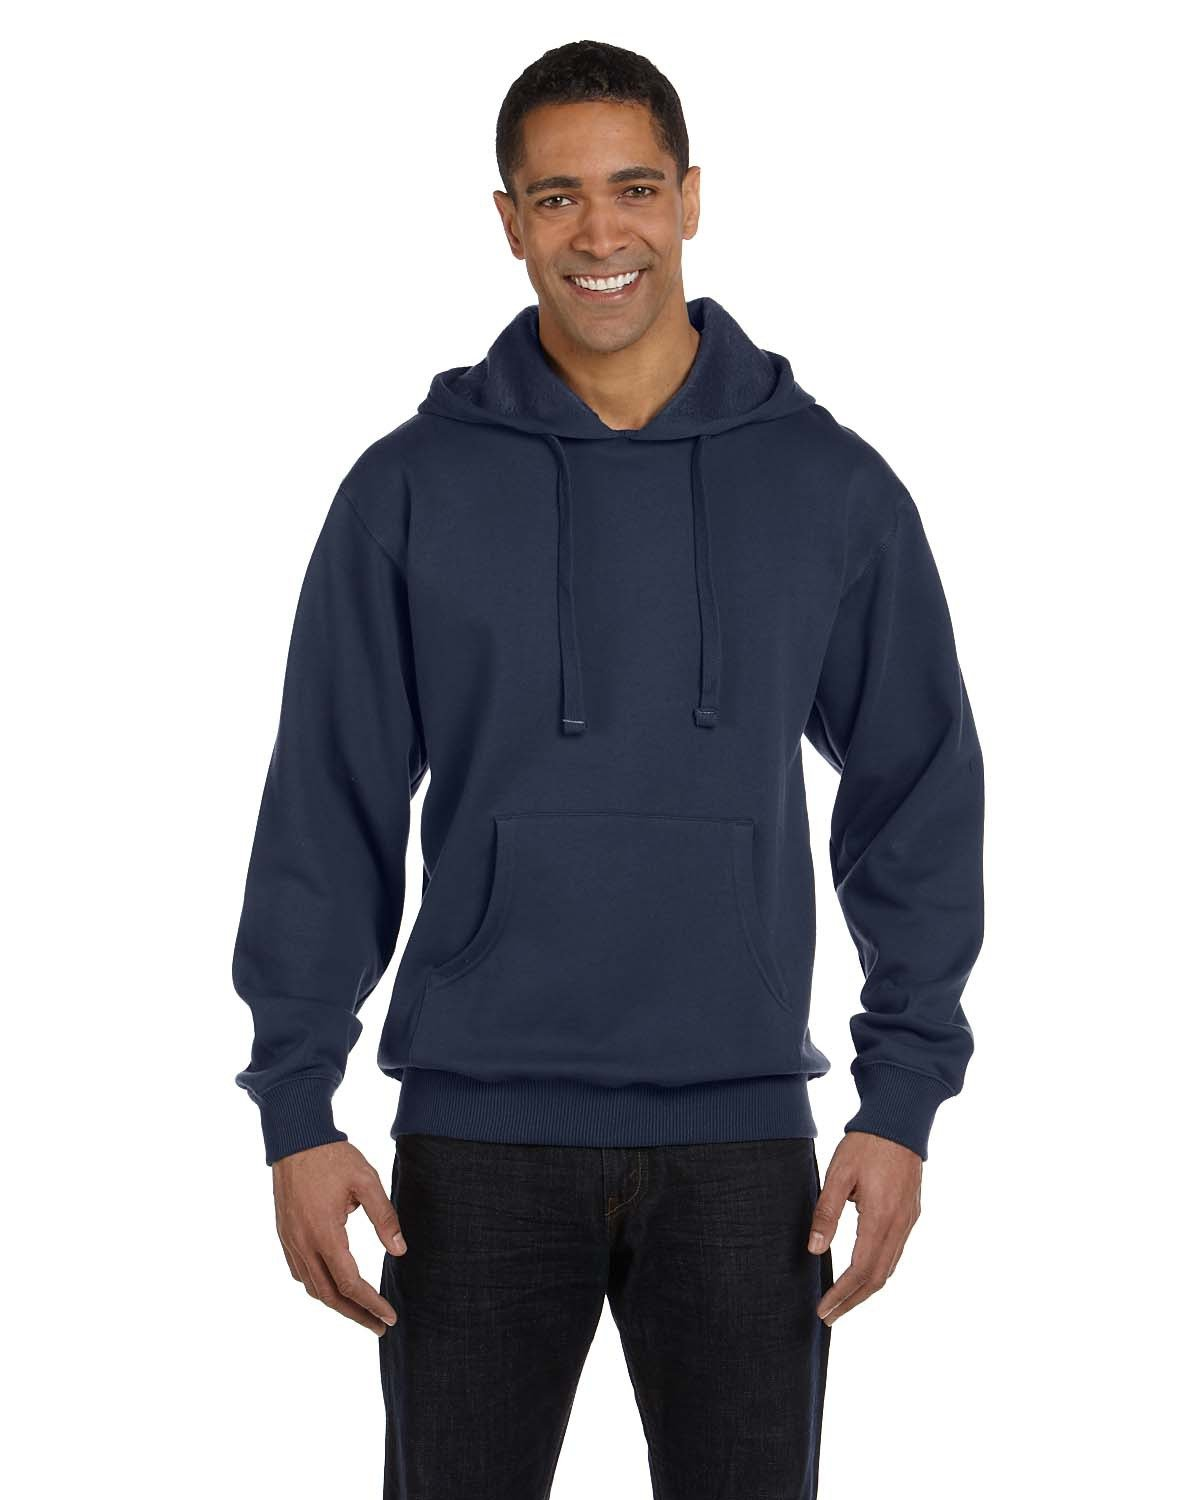 econscious Adult Organic/Recycled Pullover Hooded Sweatshirt PACIFIC